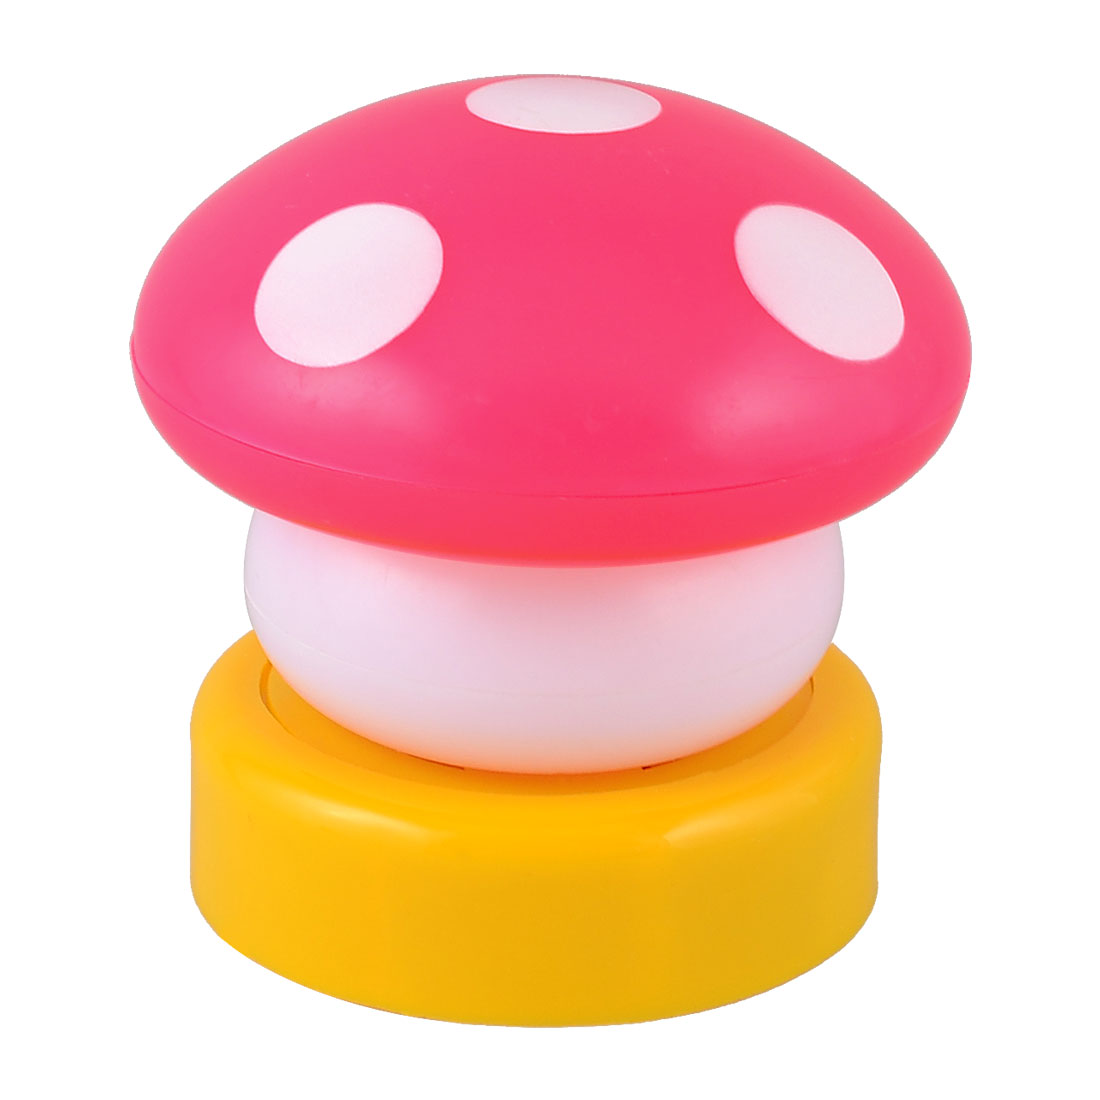 Bedroom Desk Ornament Magenta Plastic Shell Pink LED Mushroom Night Lamp Light